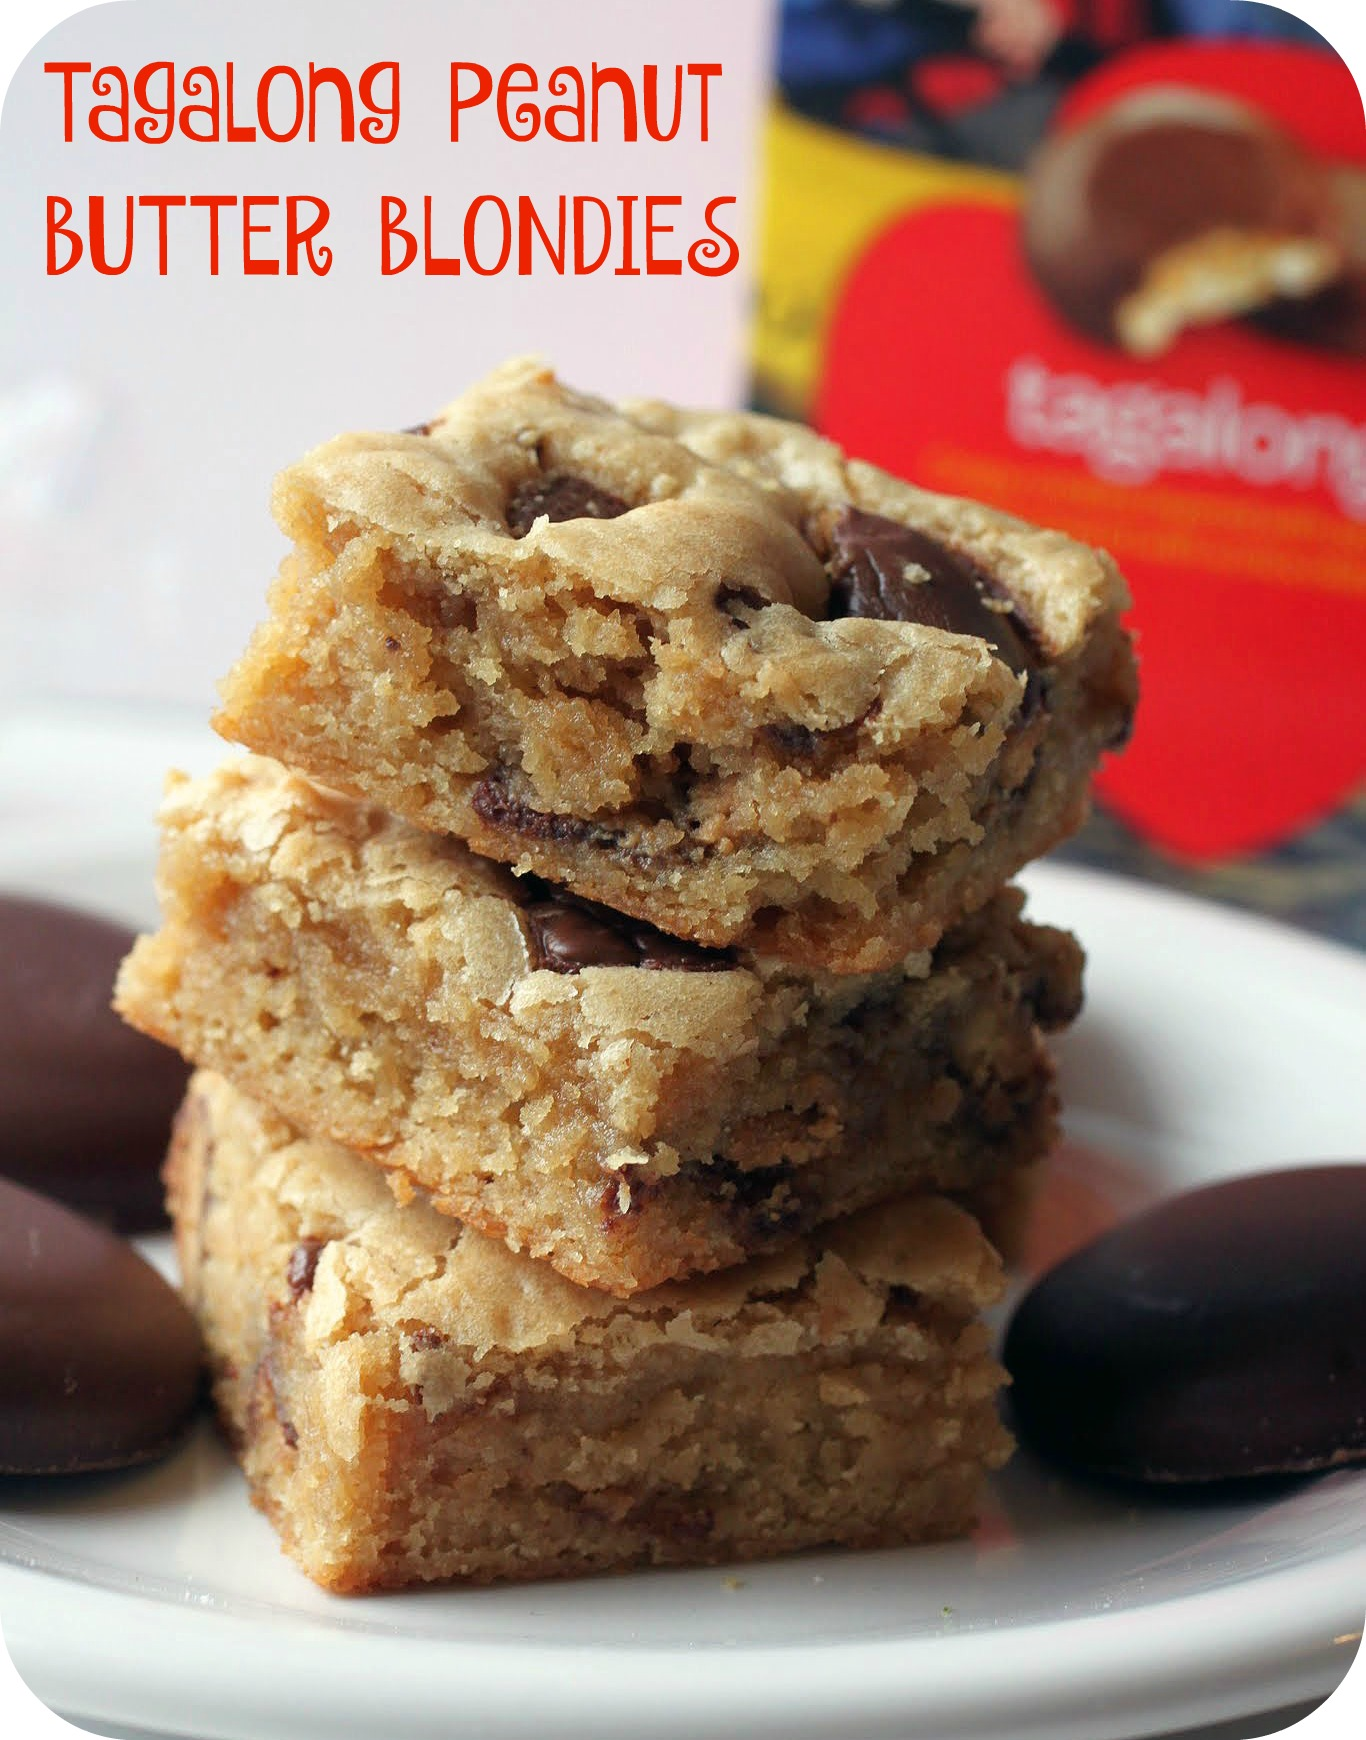 Tagalong Peanut Butter Blondies